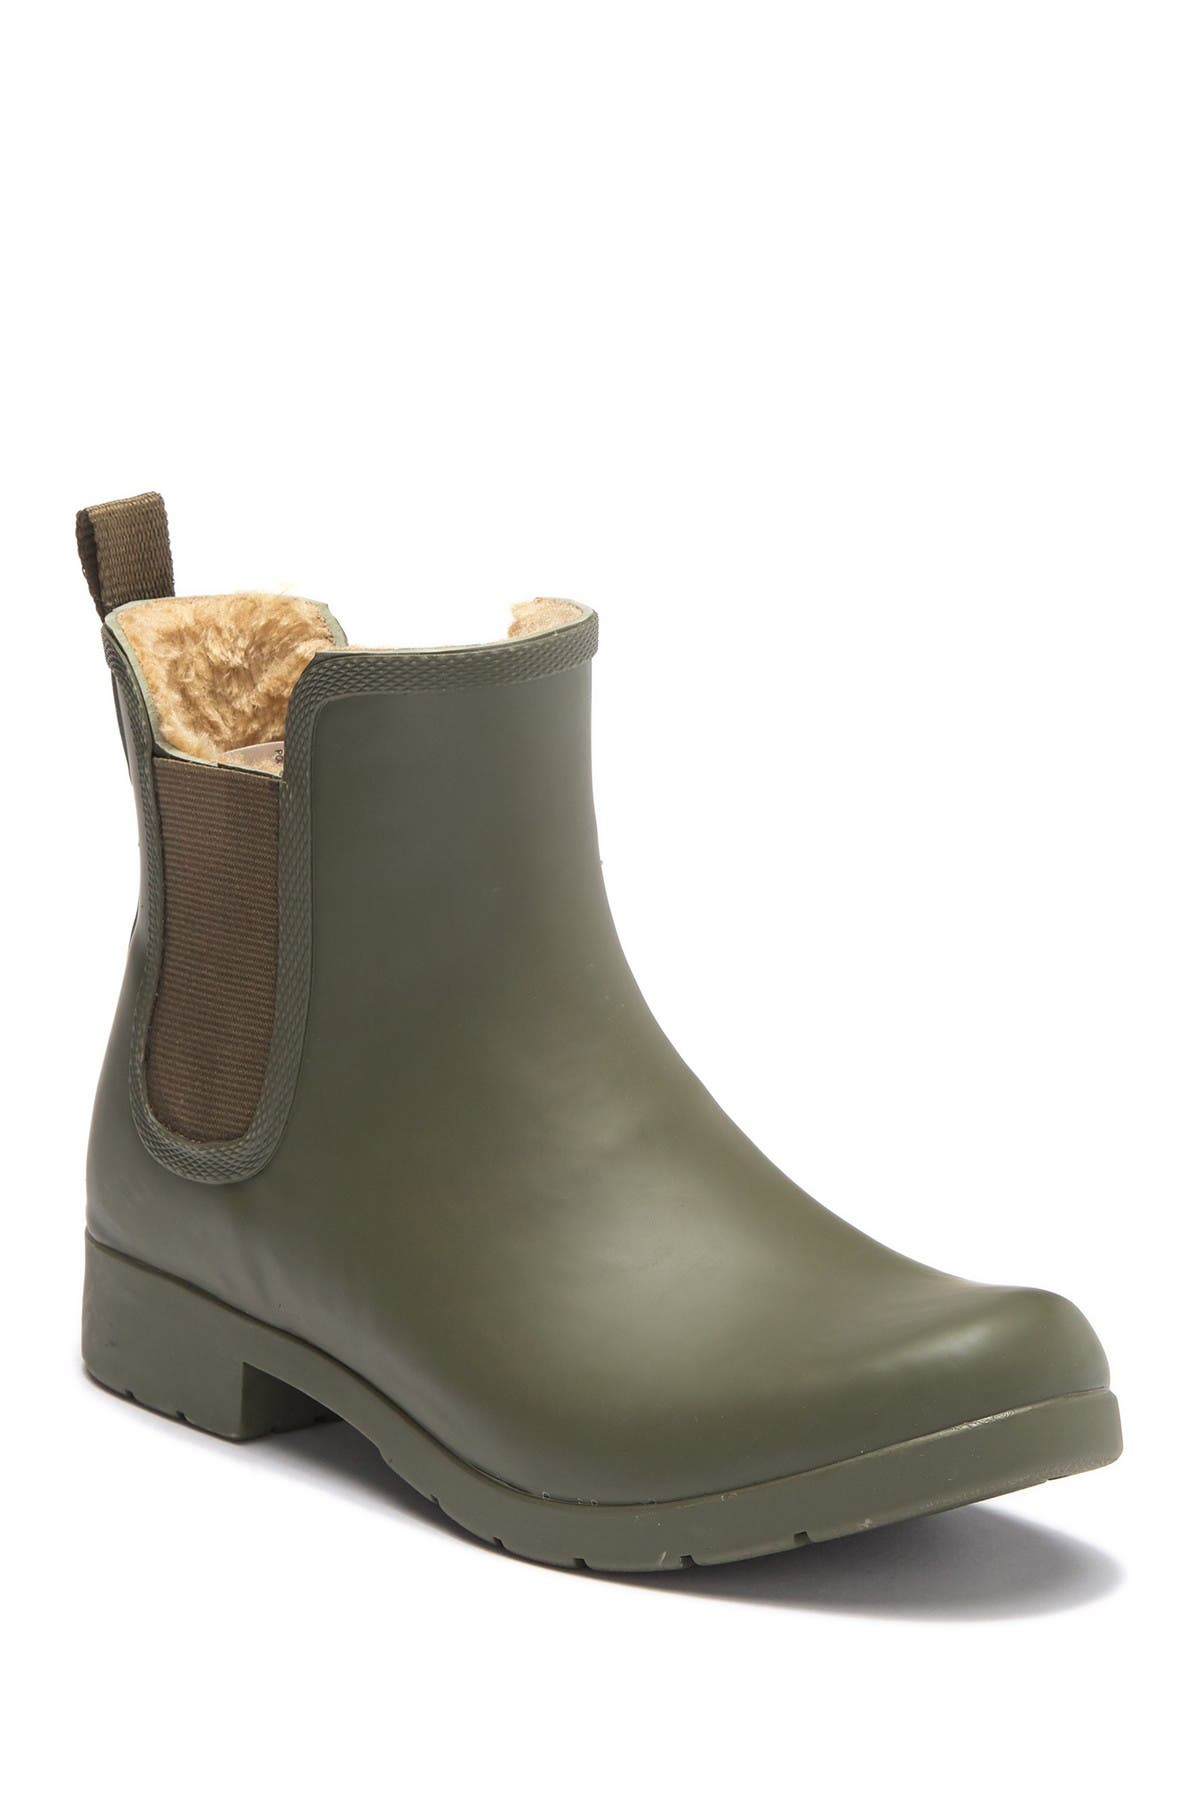 Image of Chooka Eastlake Chelsea Faux Fur Waterproof Boot